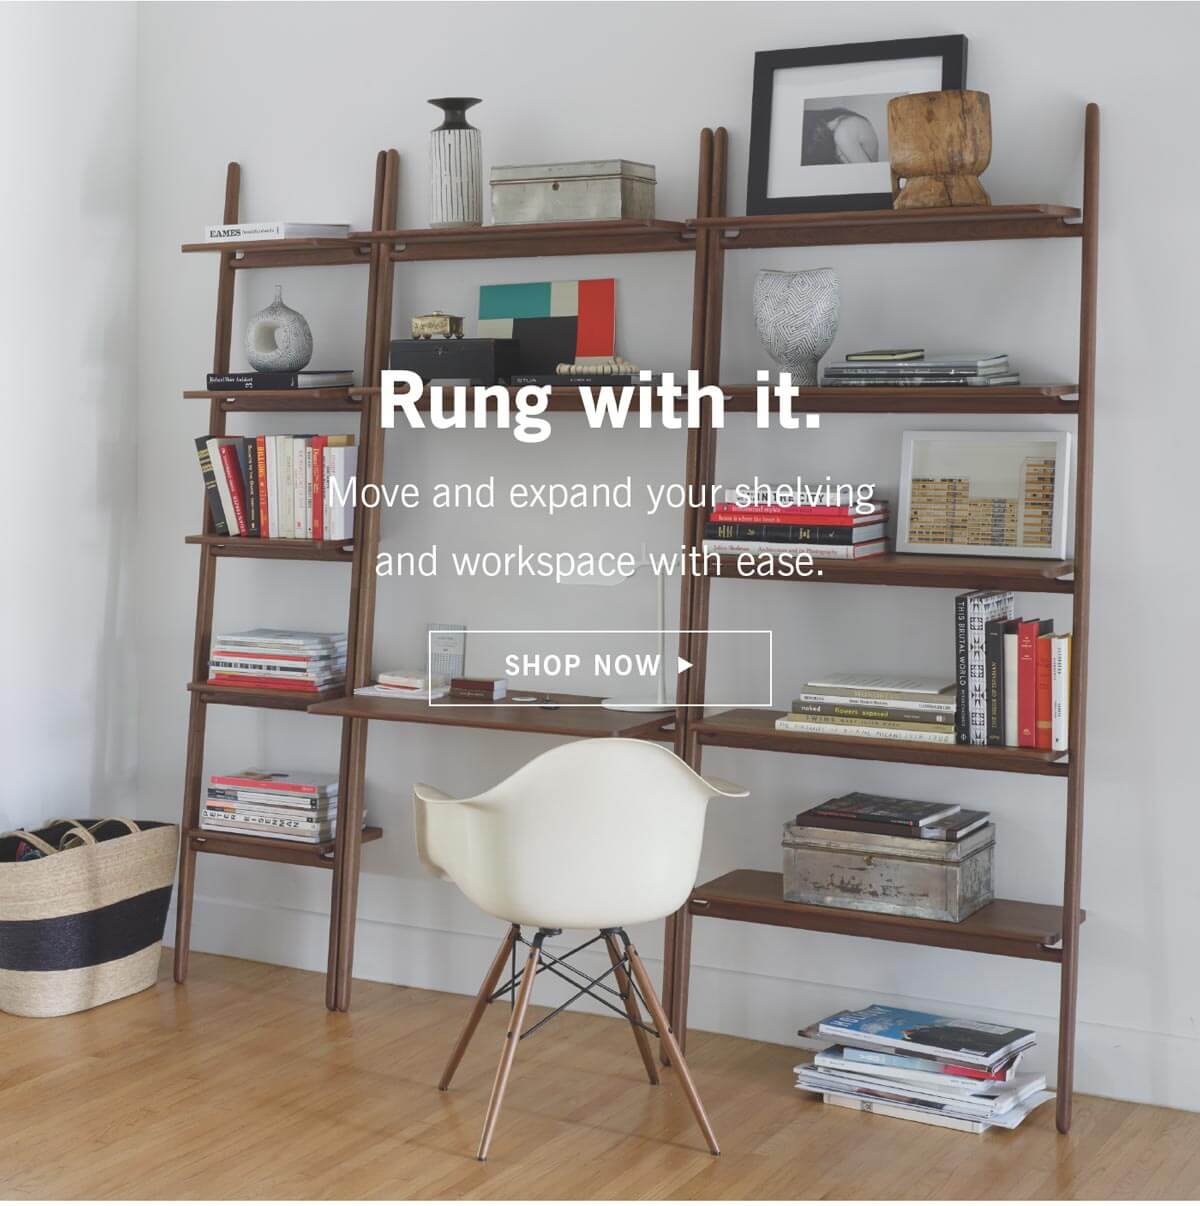 Move and expand your shelving and workspace with ease.